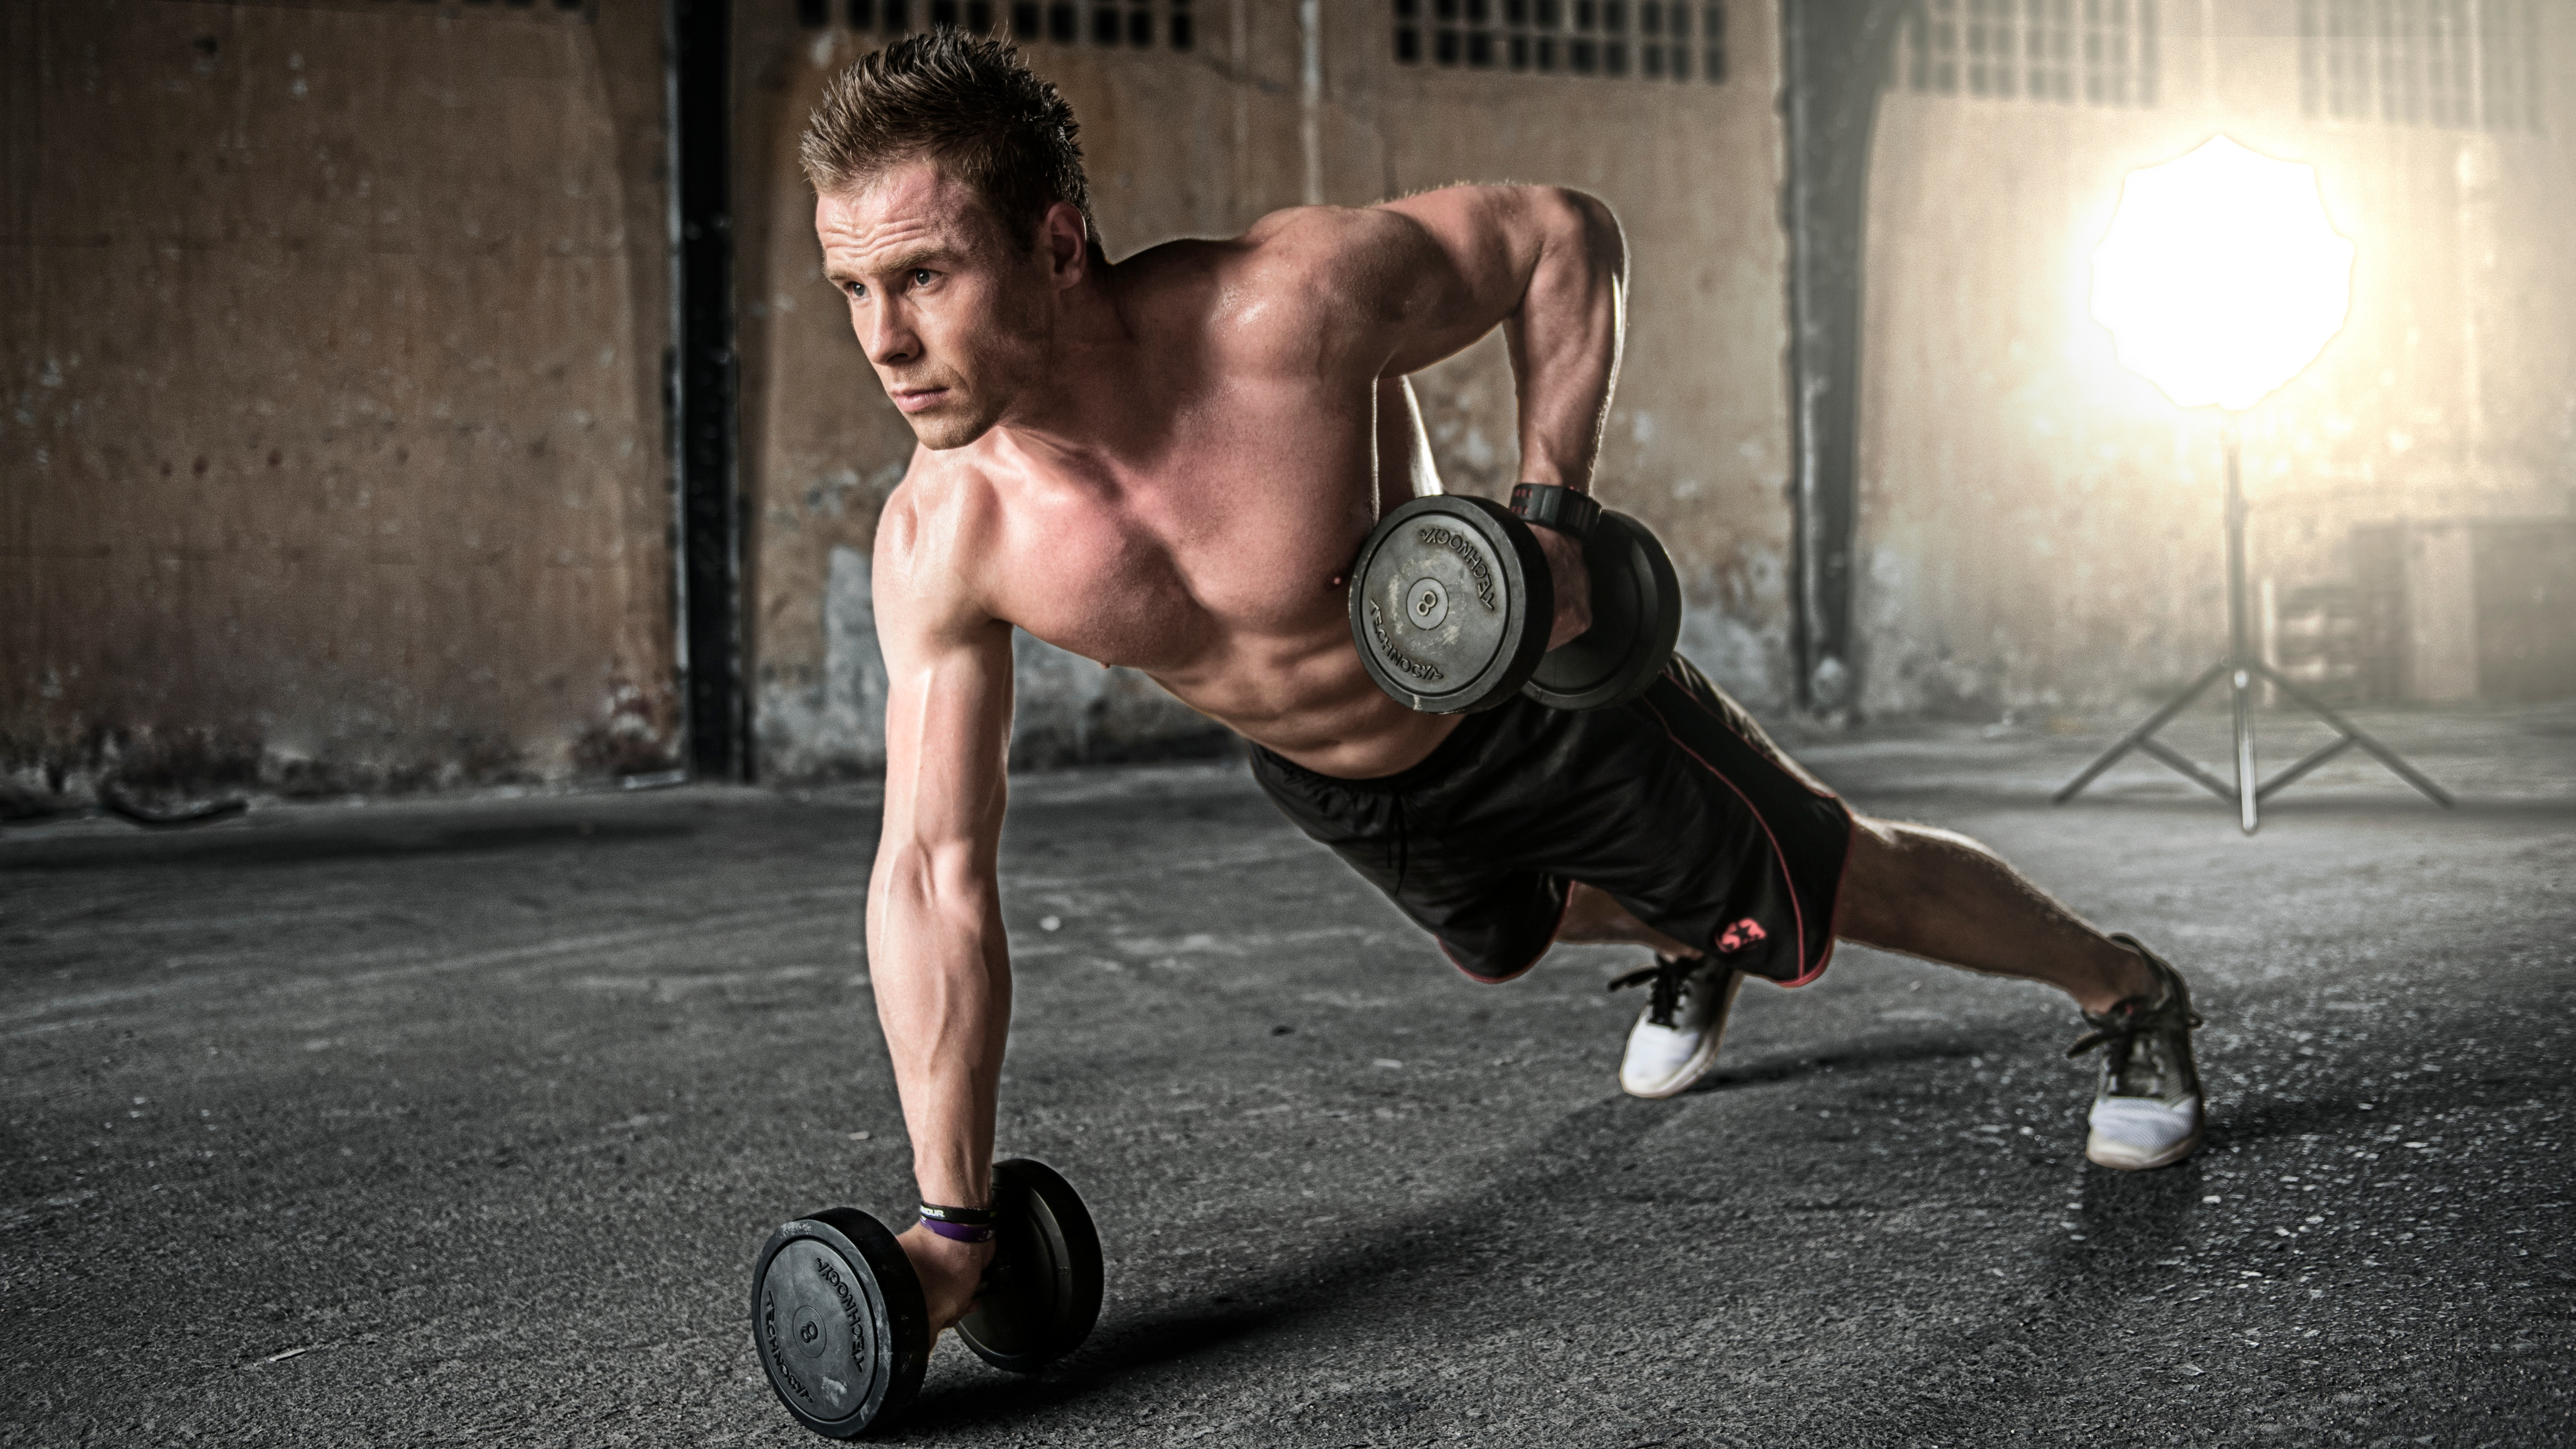 working out at the gym may give you small muscles how body